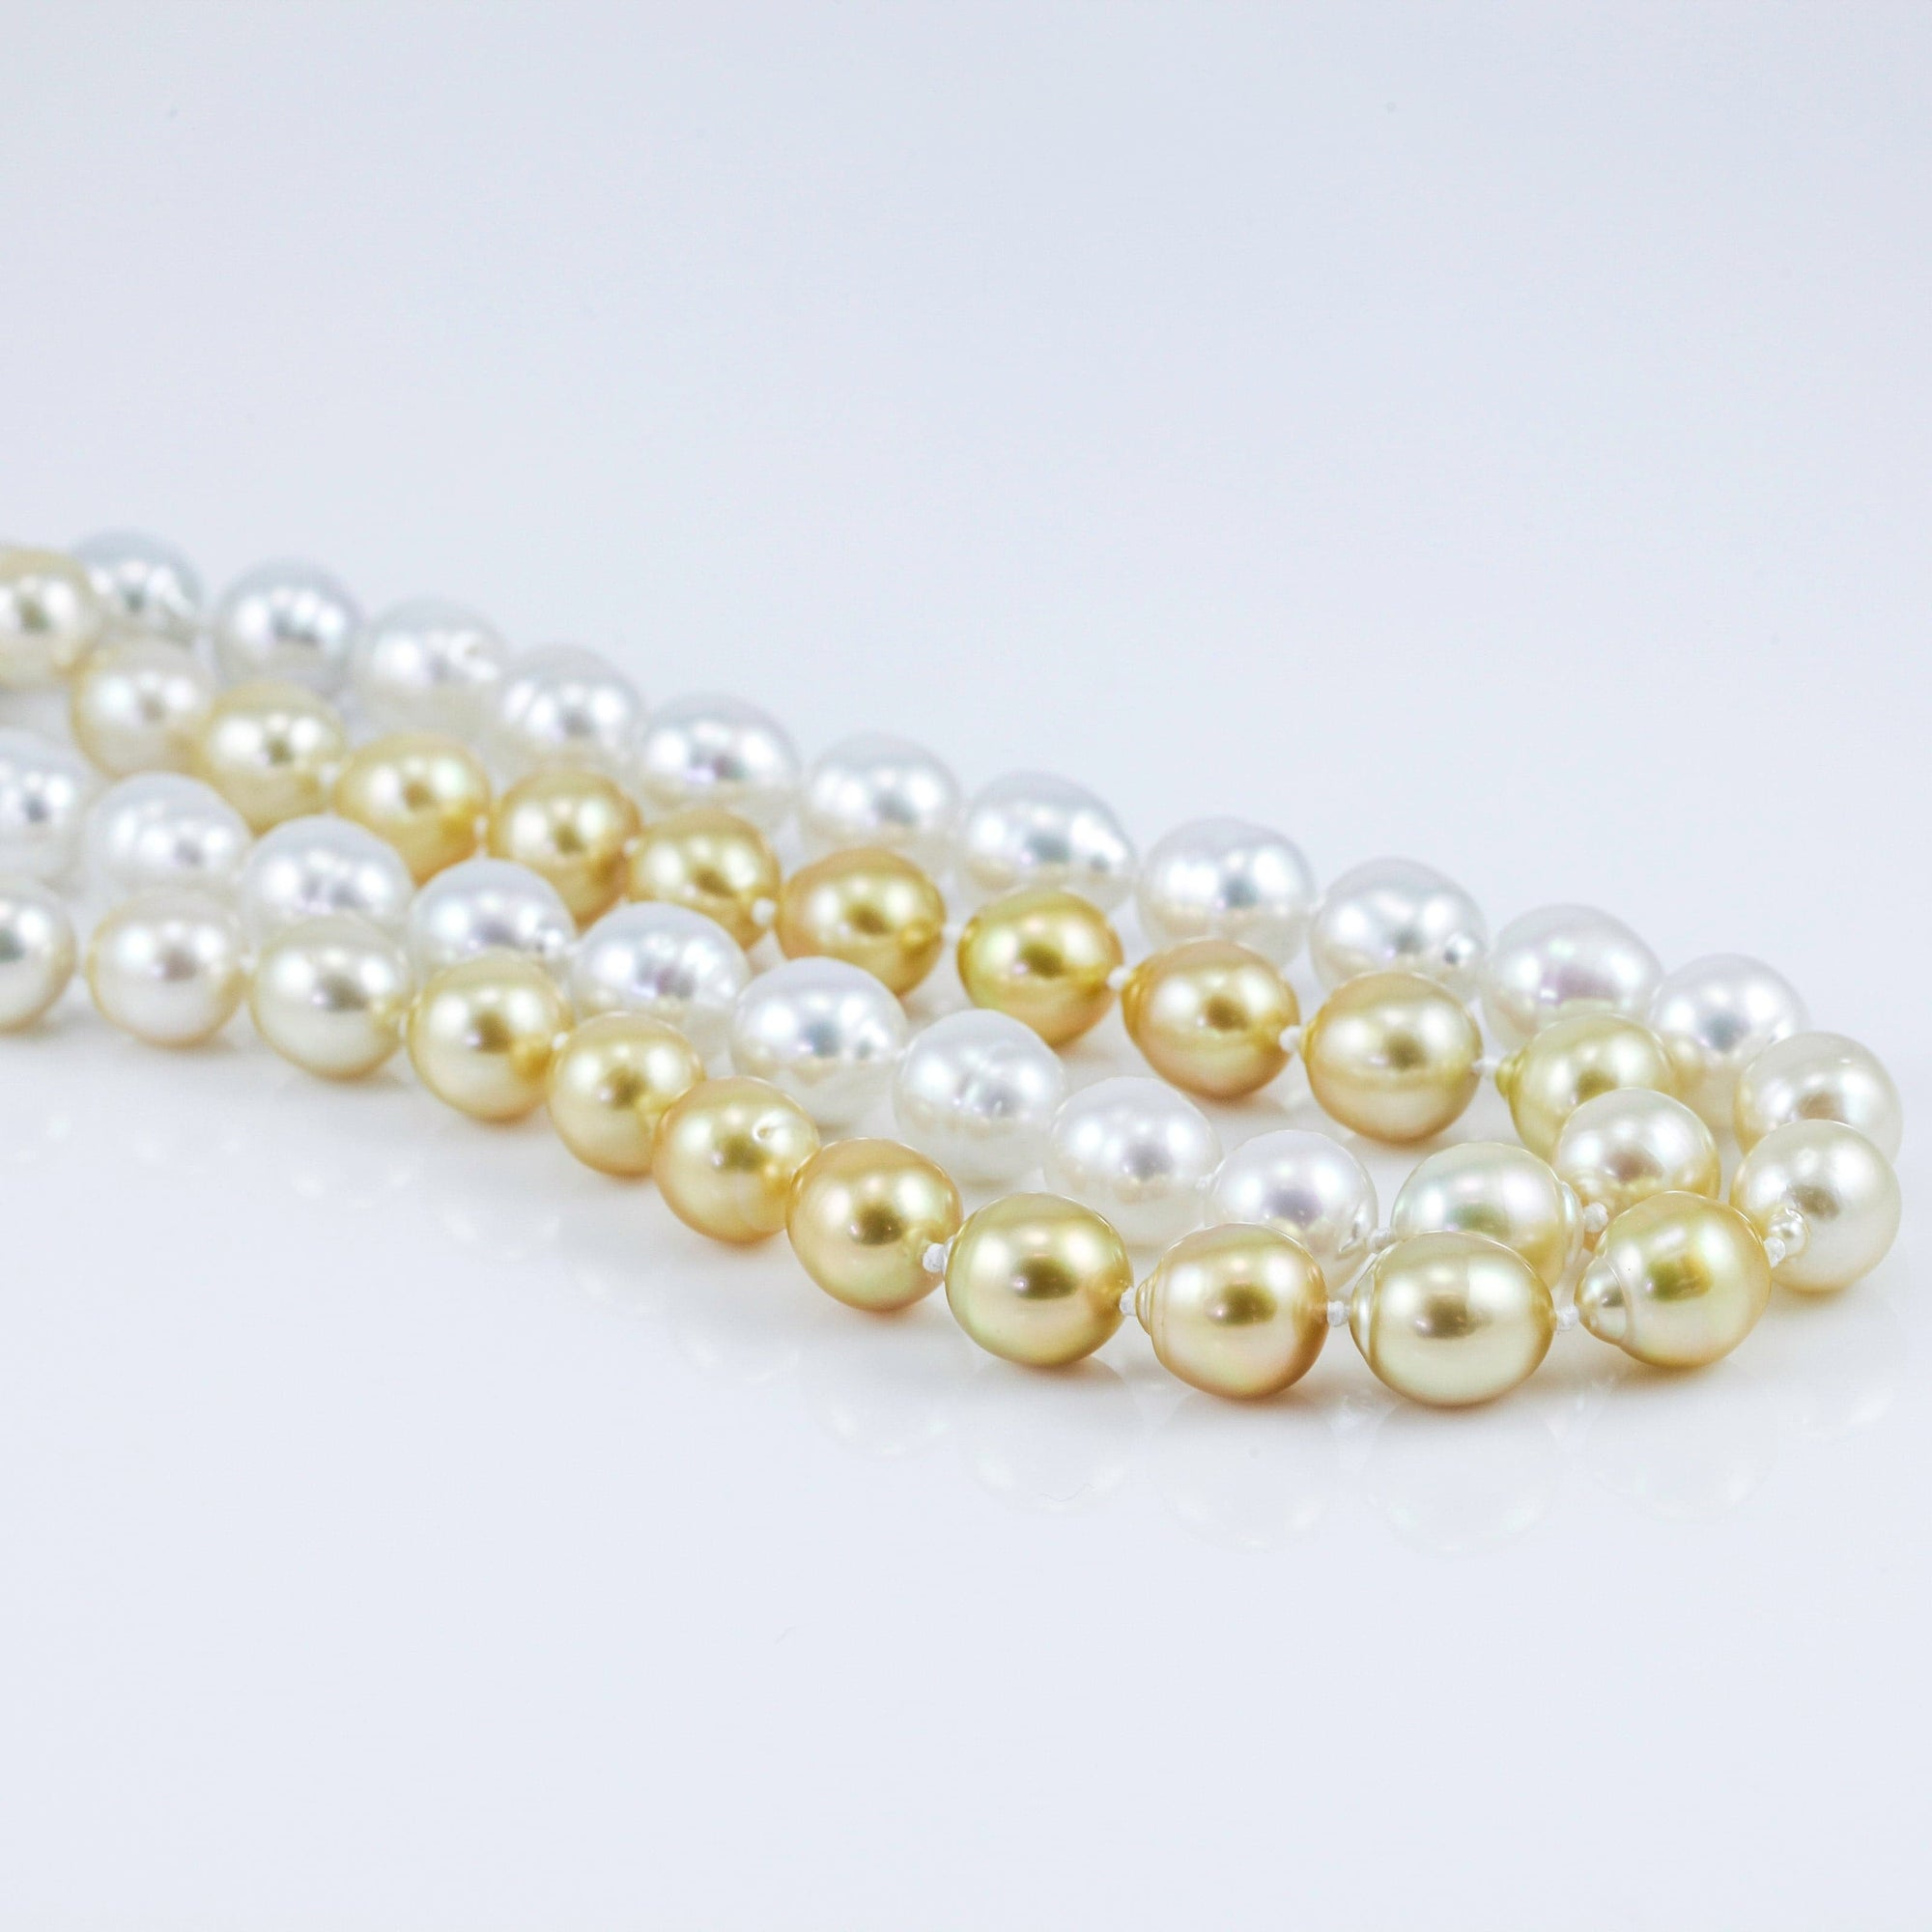 36-Inch White and Gold South Sea Baroque Pearl Necklace, 36 Inches